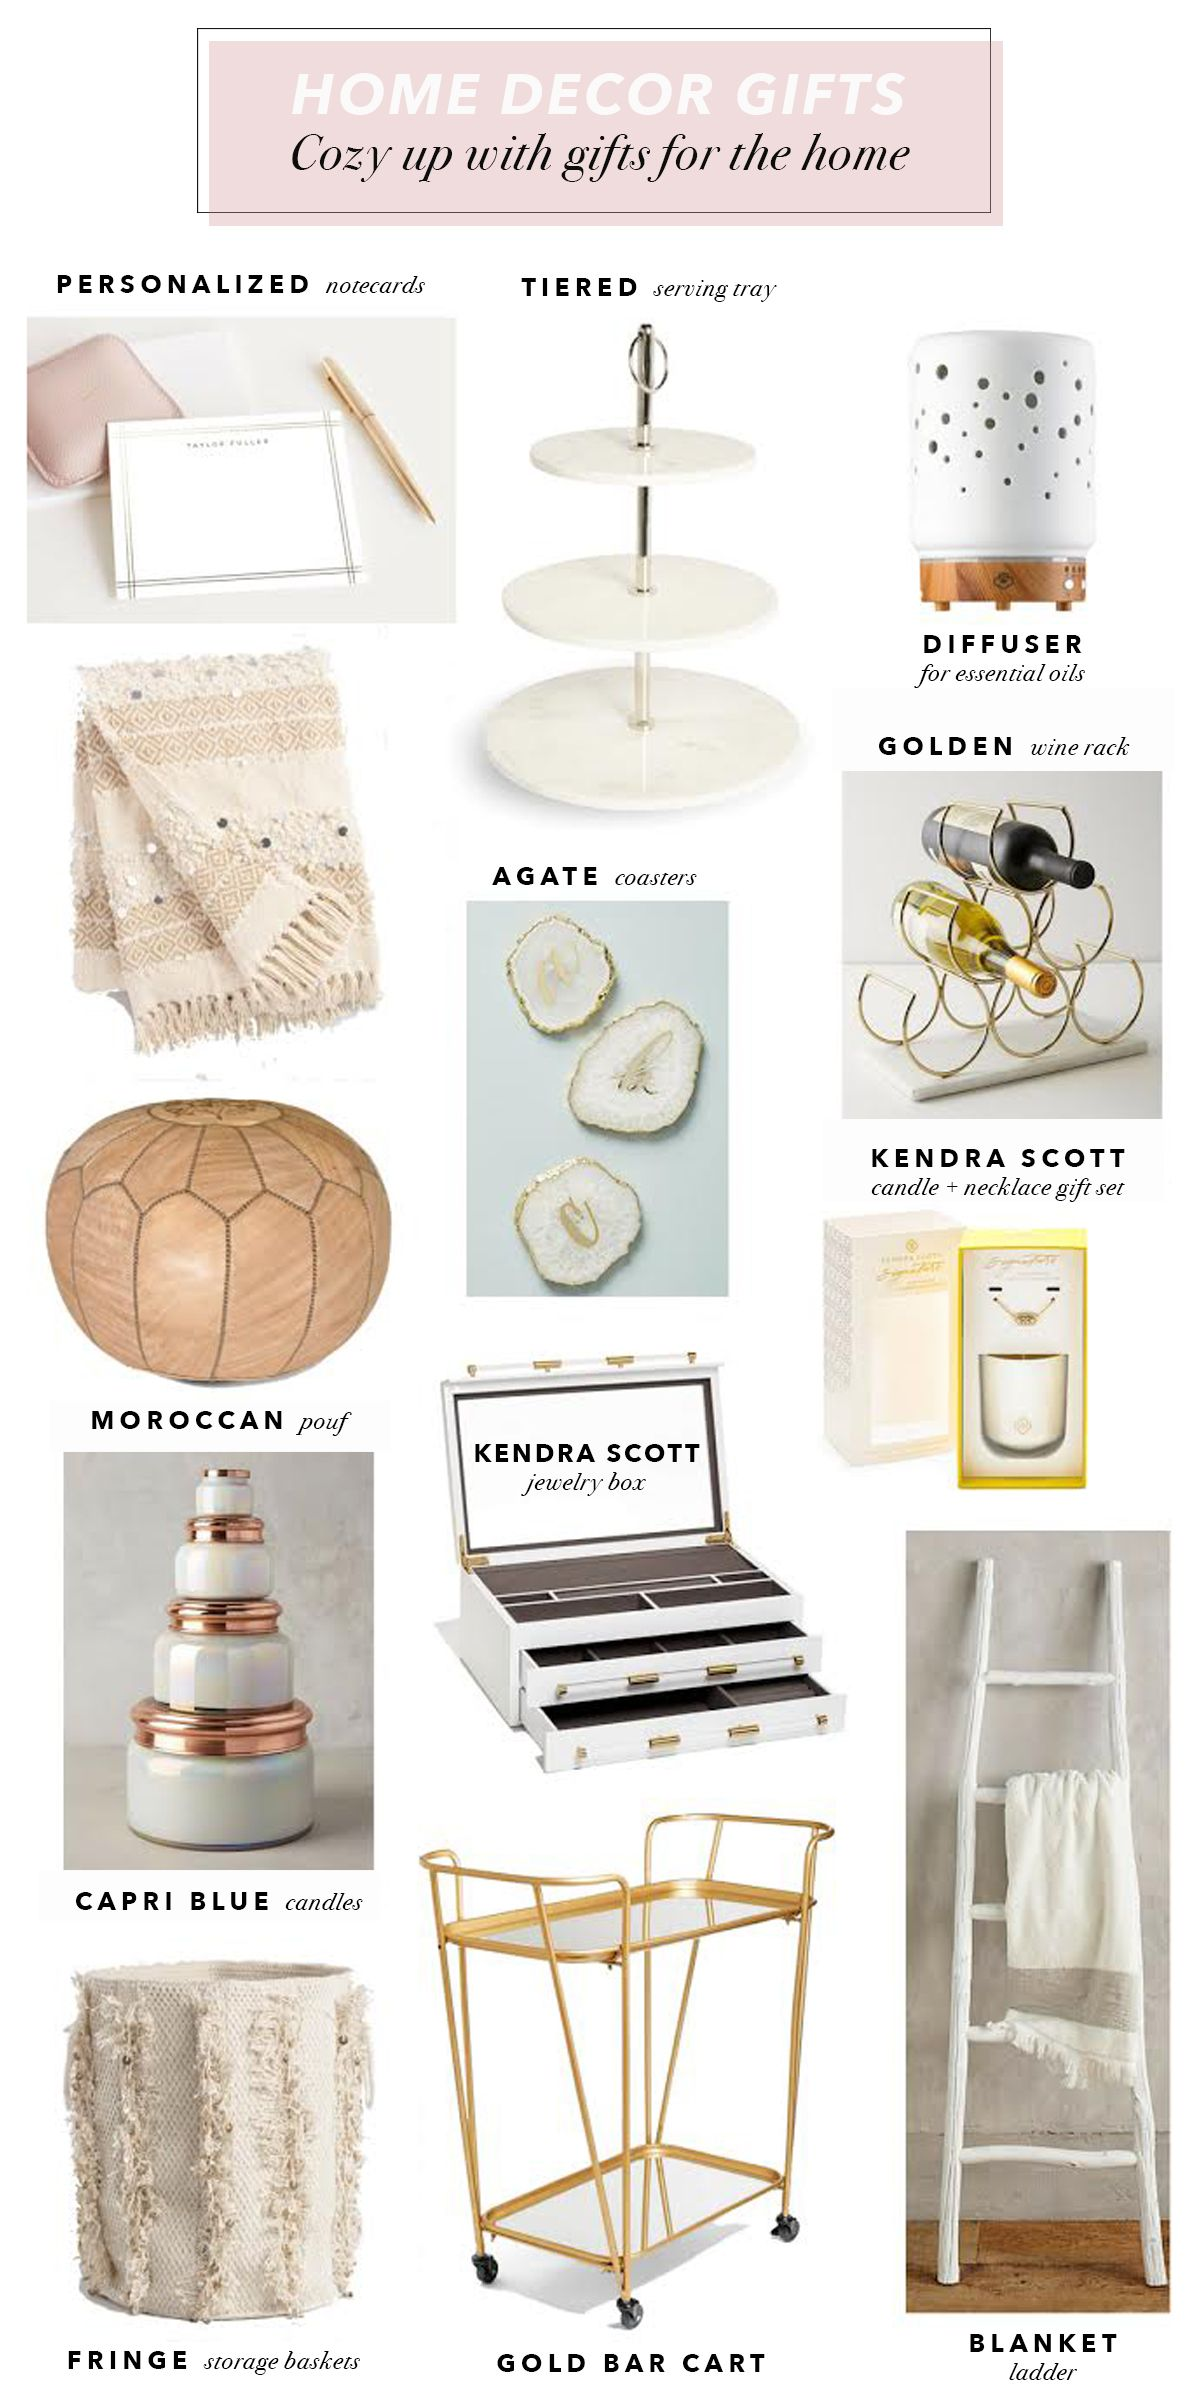 Holiday Home Decor Gift Ideas | Home decor, Capri blue candles ...